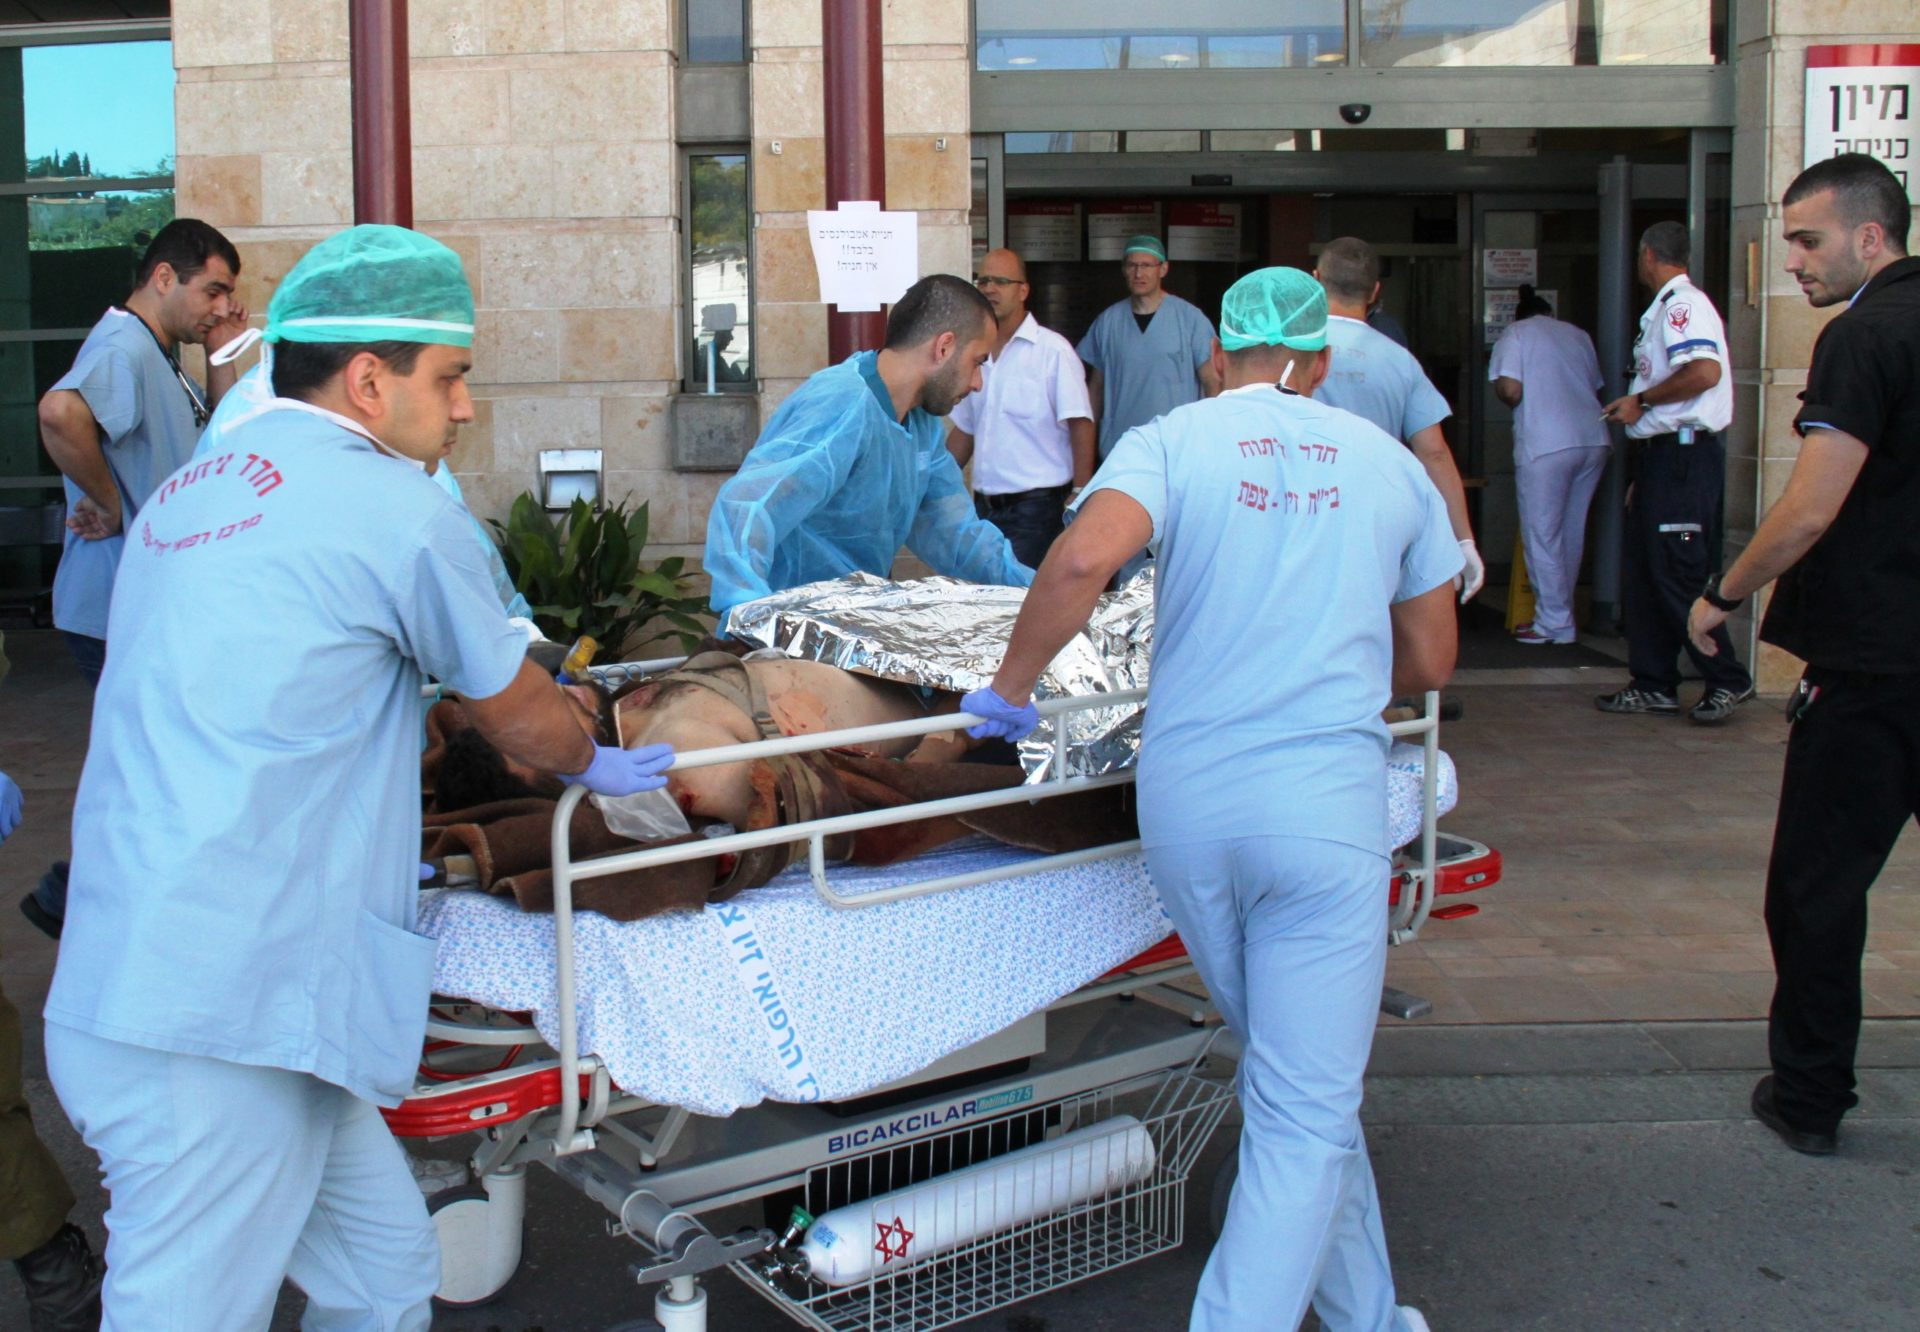 One of the injured Syrian from the civil war in Syria being transferred to the Ziv Medical Center - photo by Simon Haddad